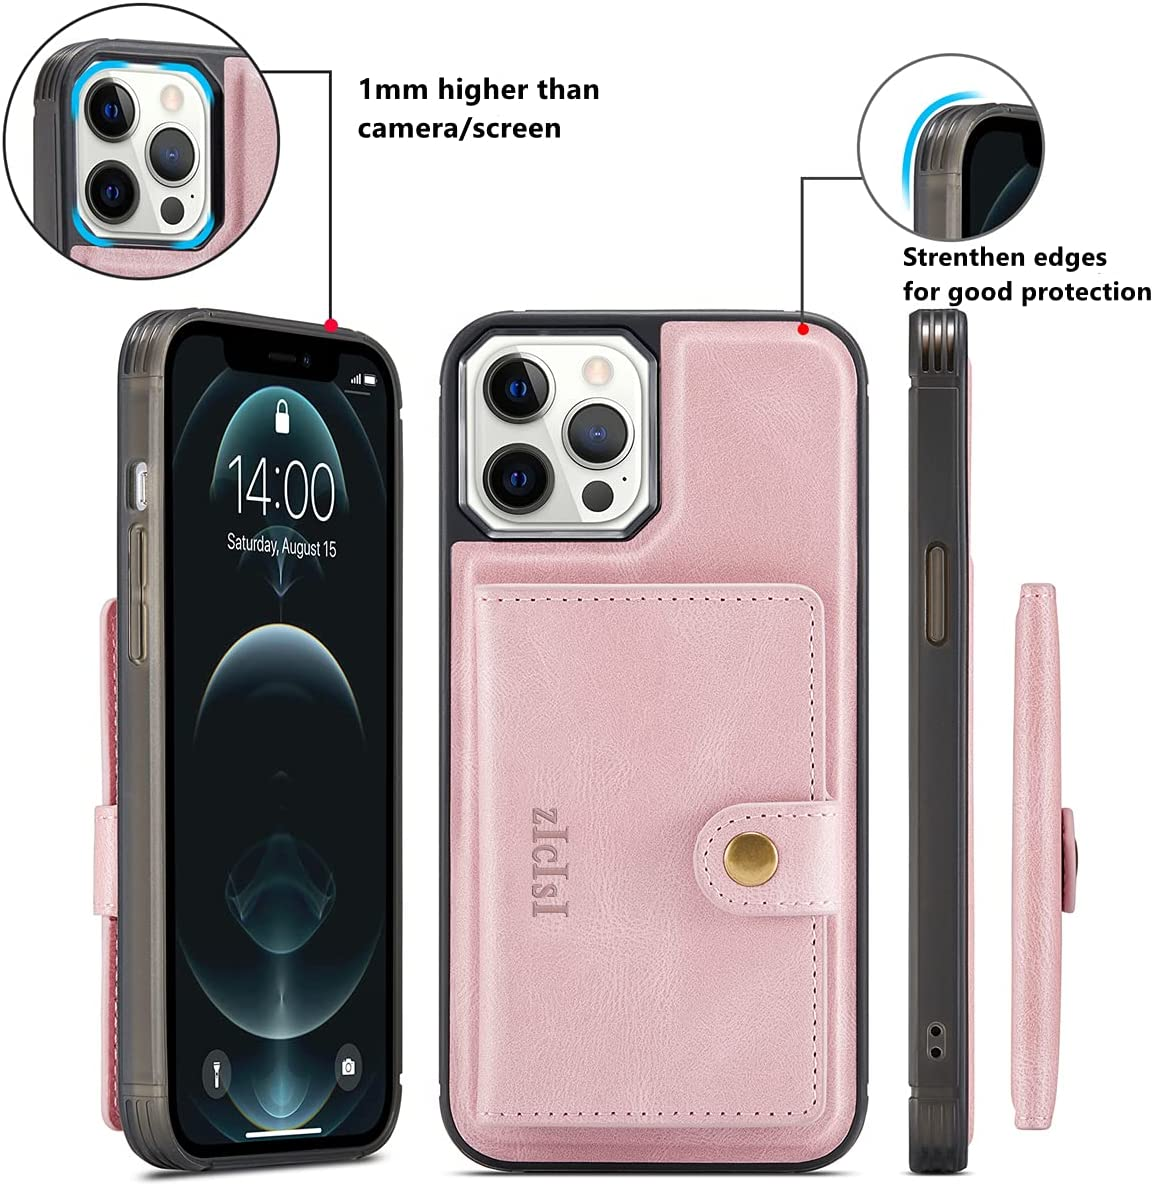 ZICISI Magsafe Leather Case for Apple iPhone 12 pro max with Card Holders for Women Men,Protective Phone Cover with Detachable Magnetic Wallet,Compatible MagSafe Accessories,6.7 inches (Pink)